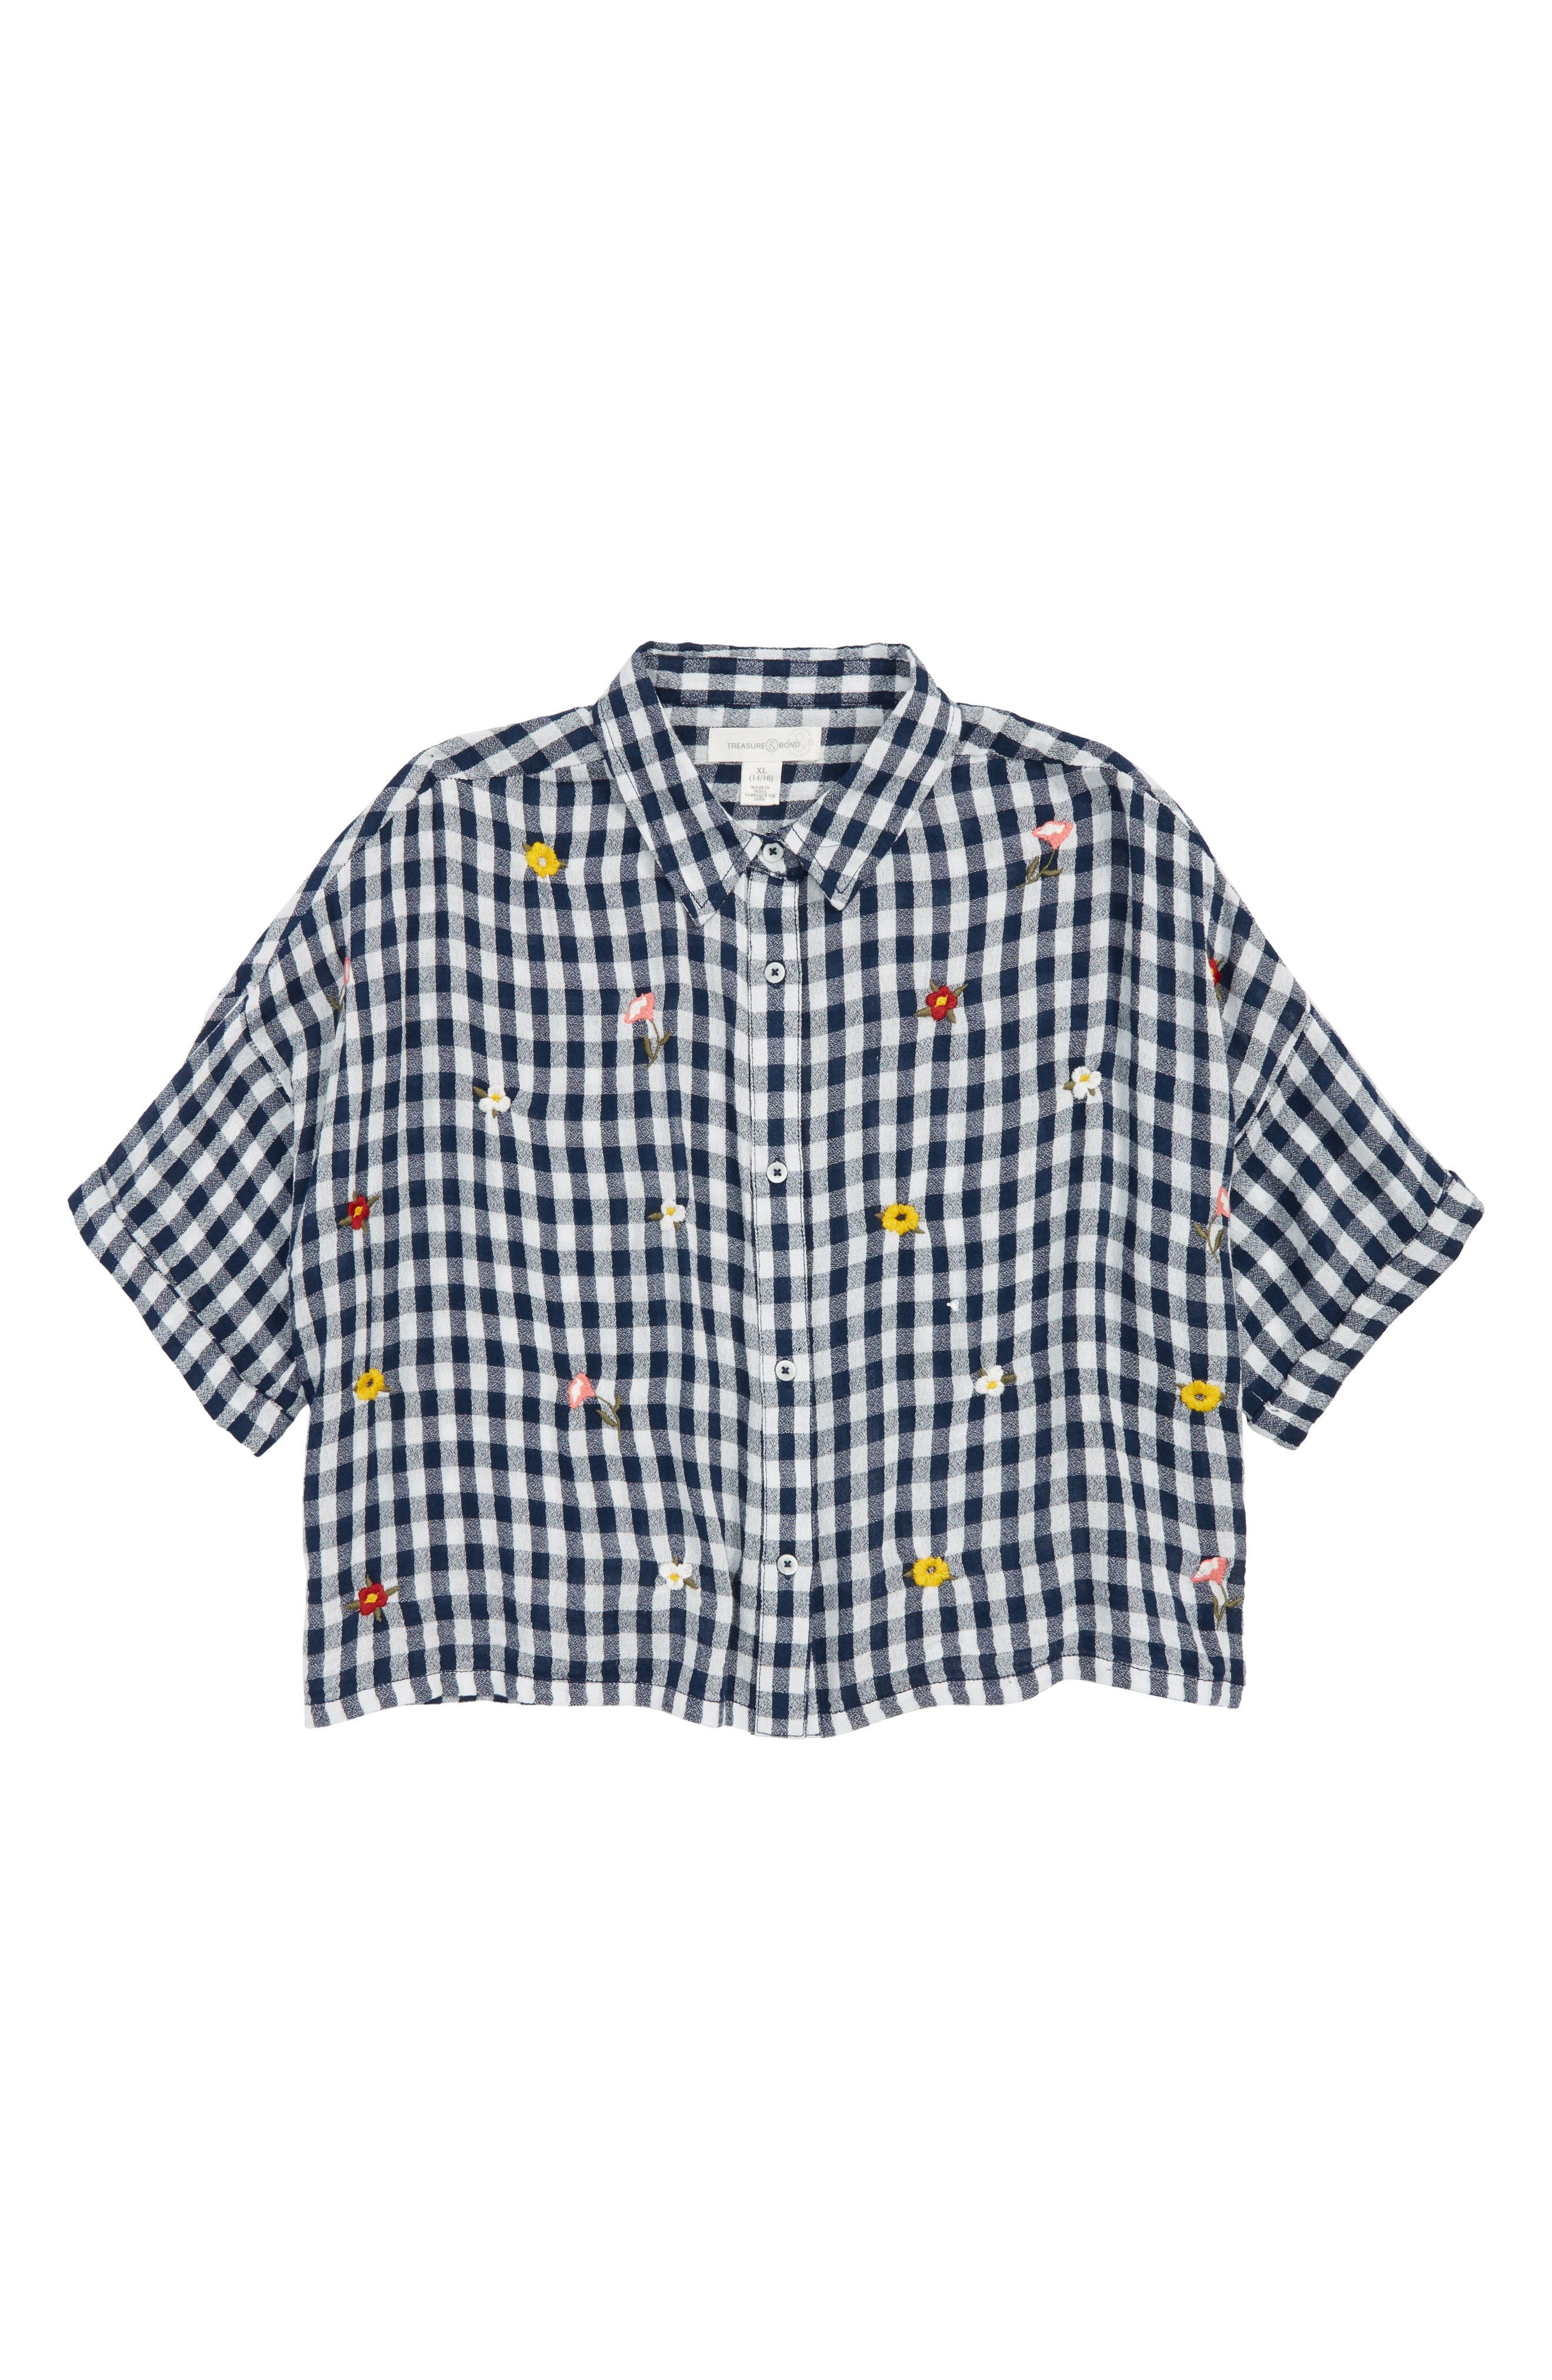 Gingham Embroidered Shirt,                         Main,                         color, Navy Armada- White Gingham